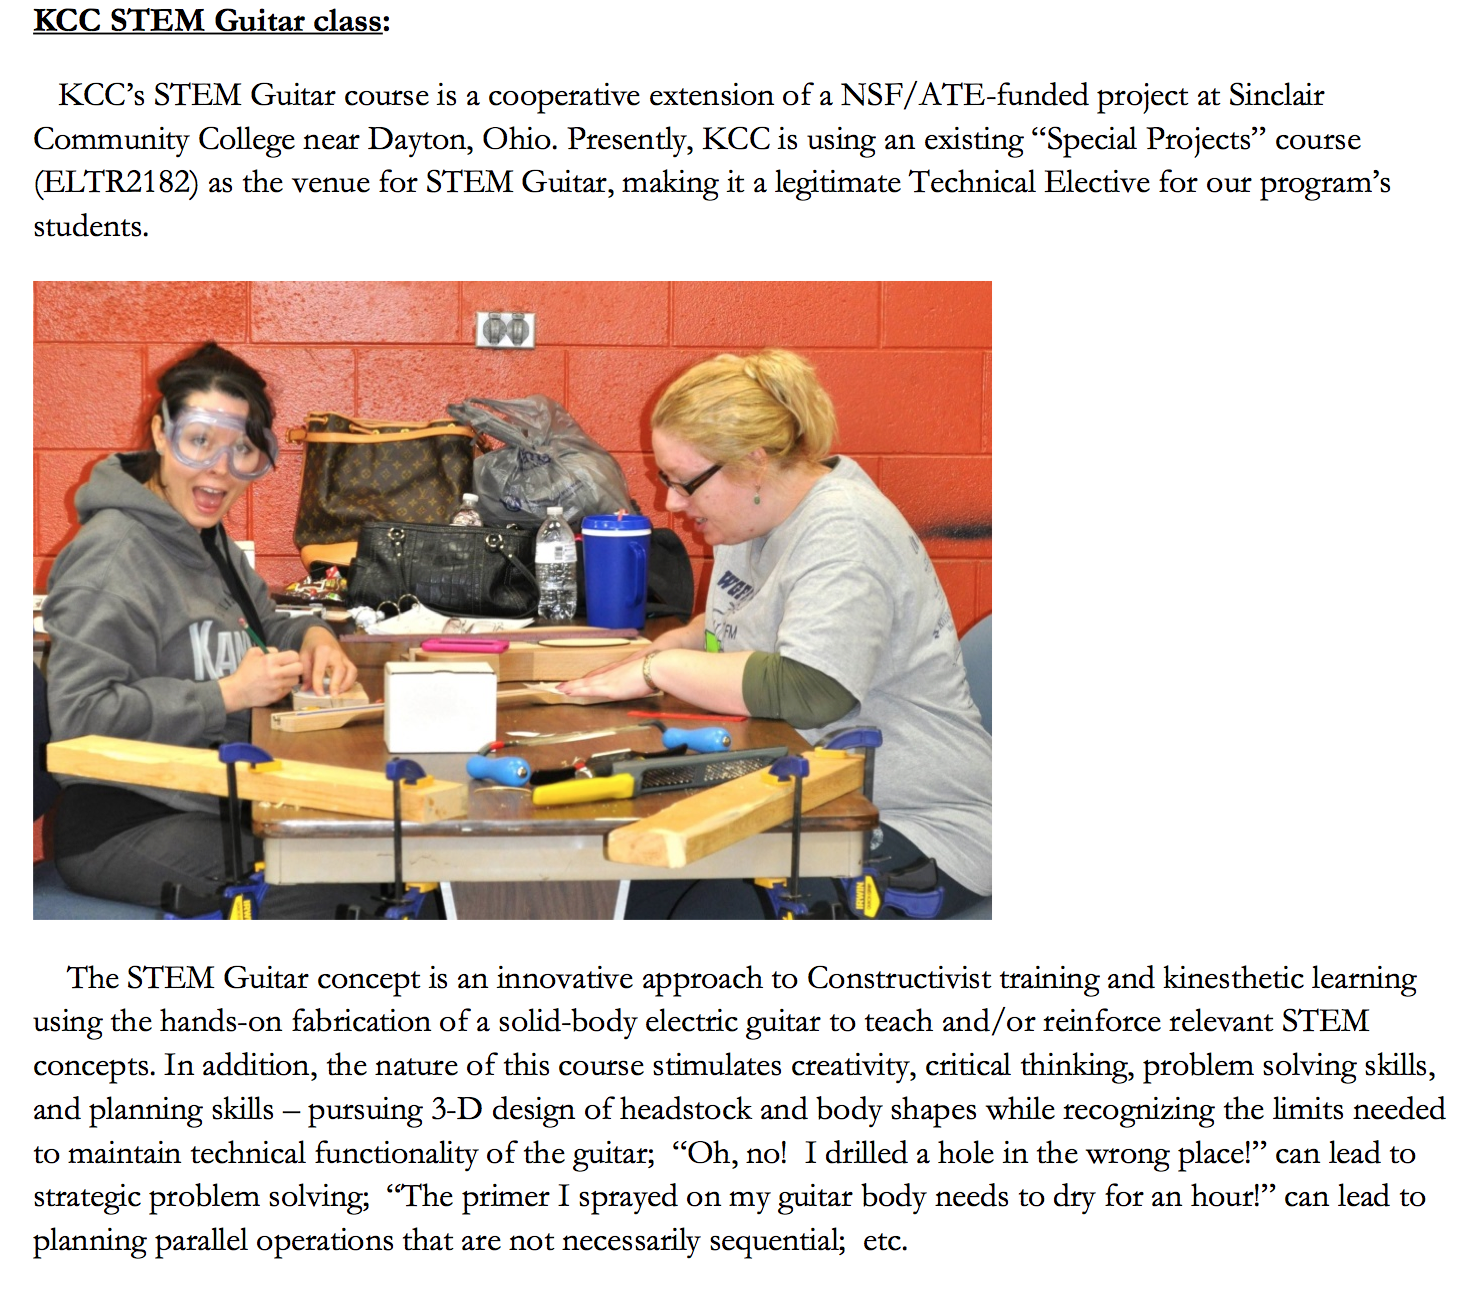 KCC's STEM Guitar Press Release